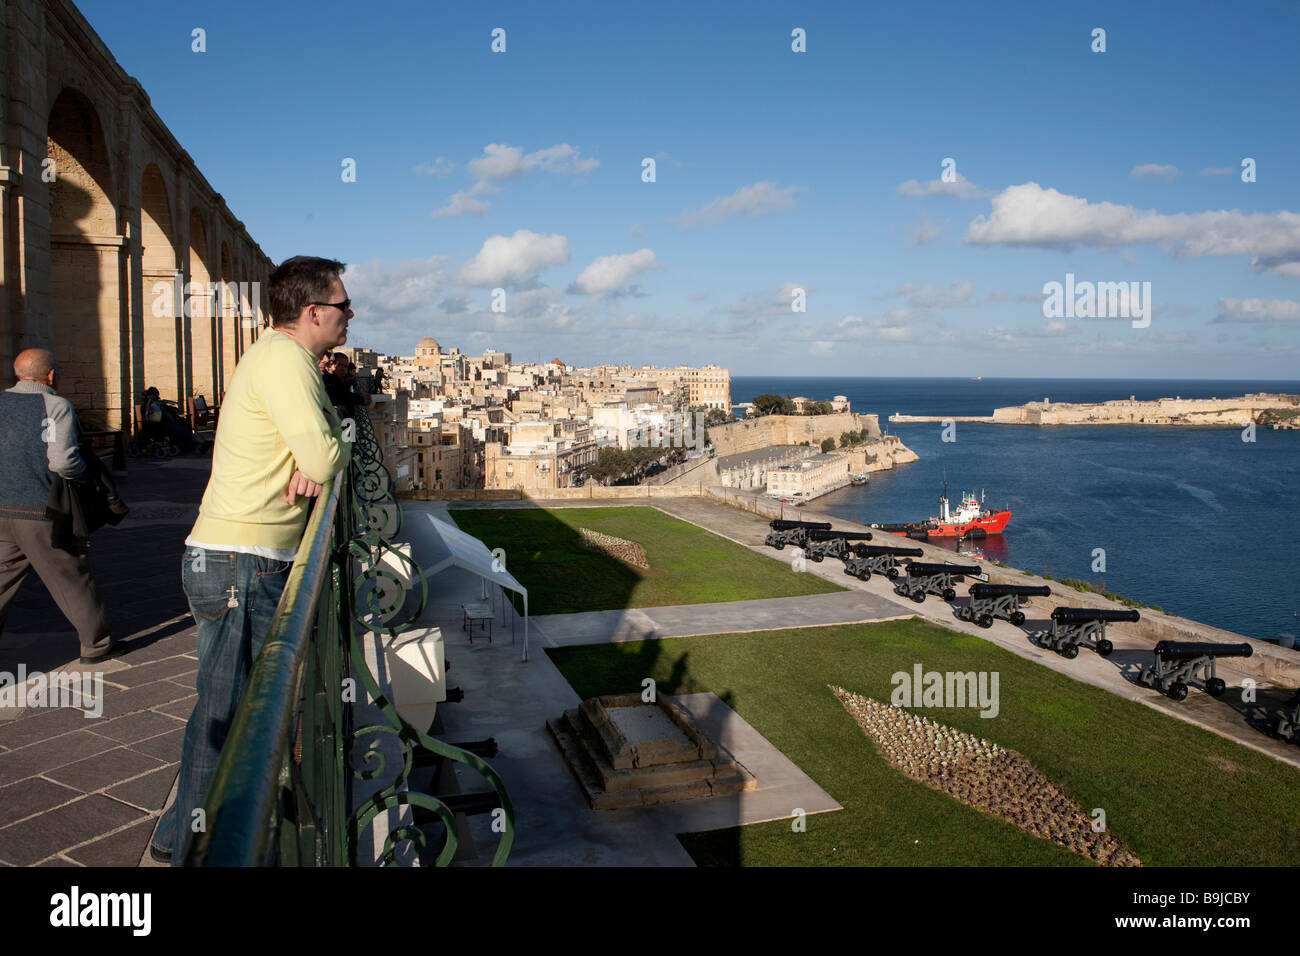 View of Grand Harbour from the Upper Barracca Garden, Valletta, Malta, Europe - Stock Image